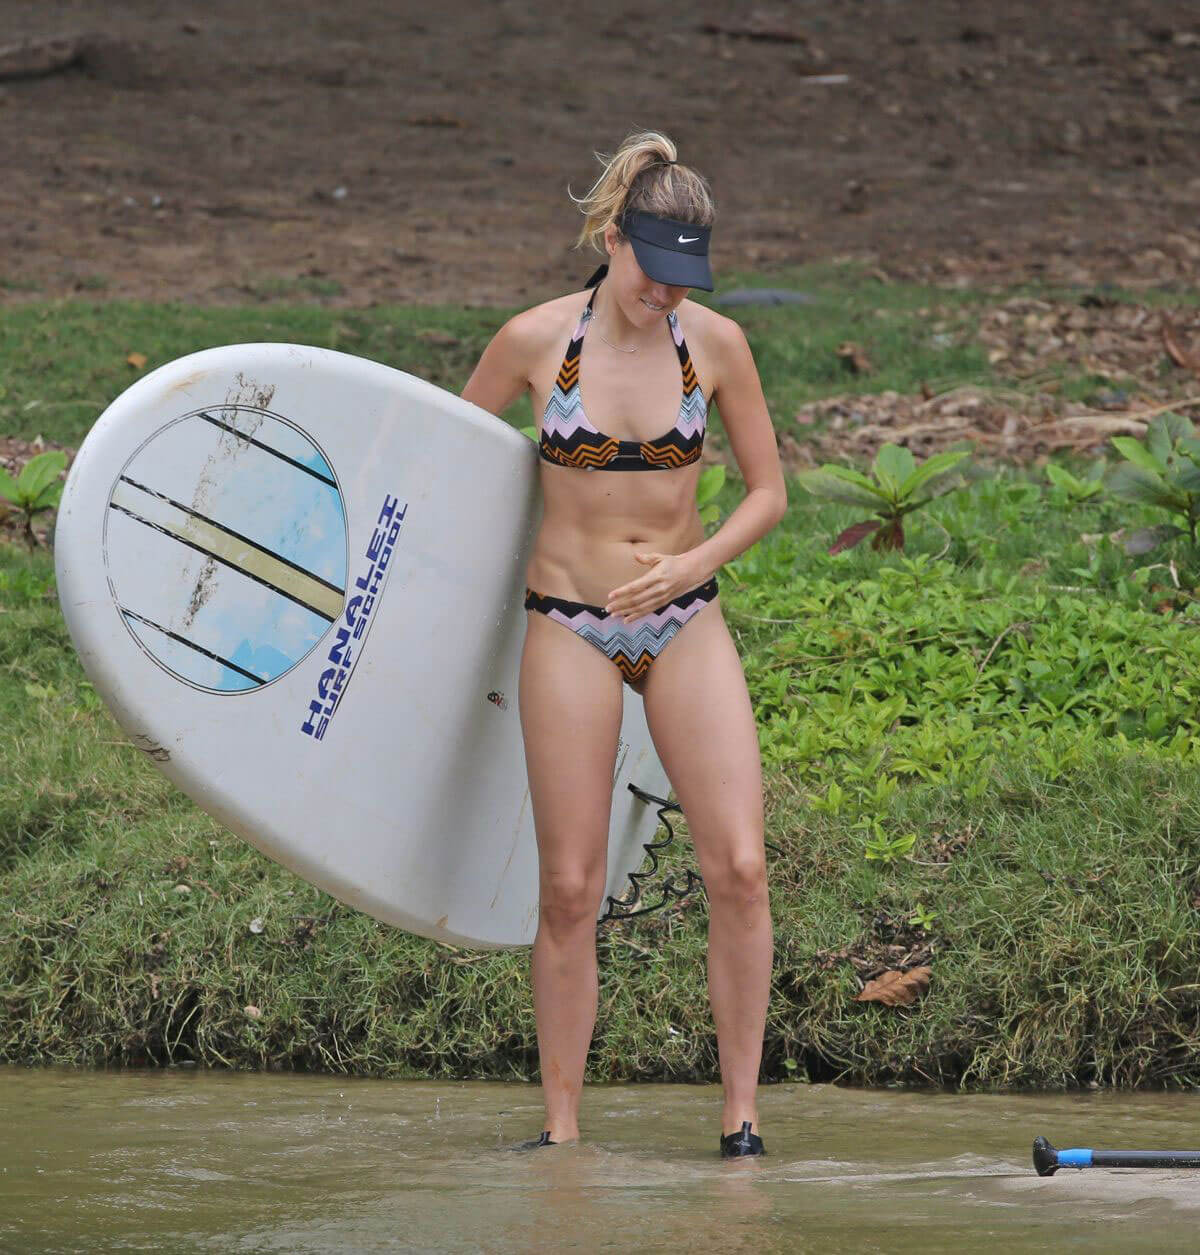 Cody Horn in Bikini on vacation in Hawaii, March 2017